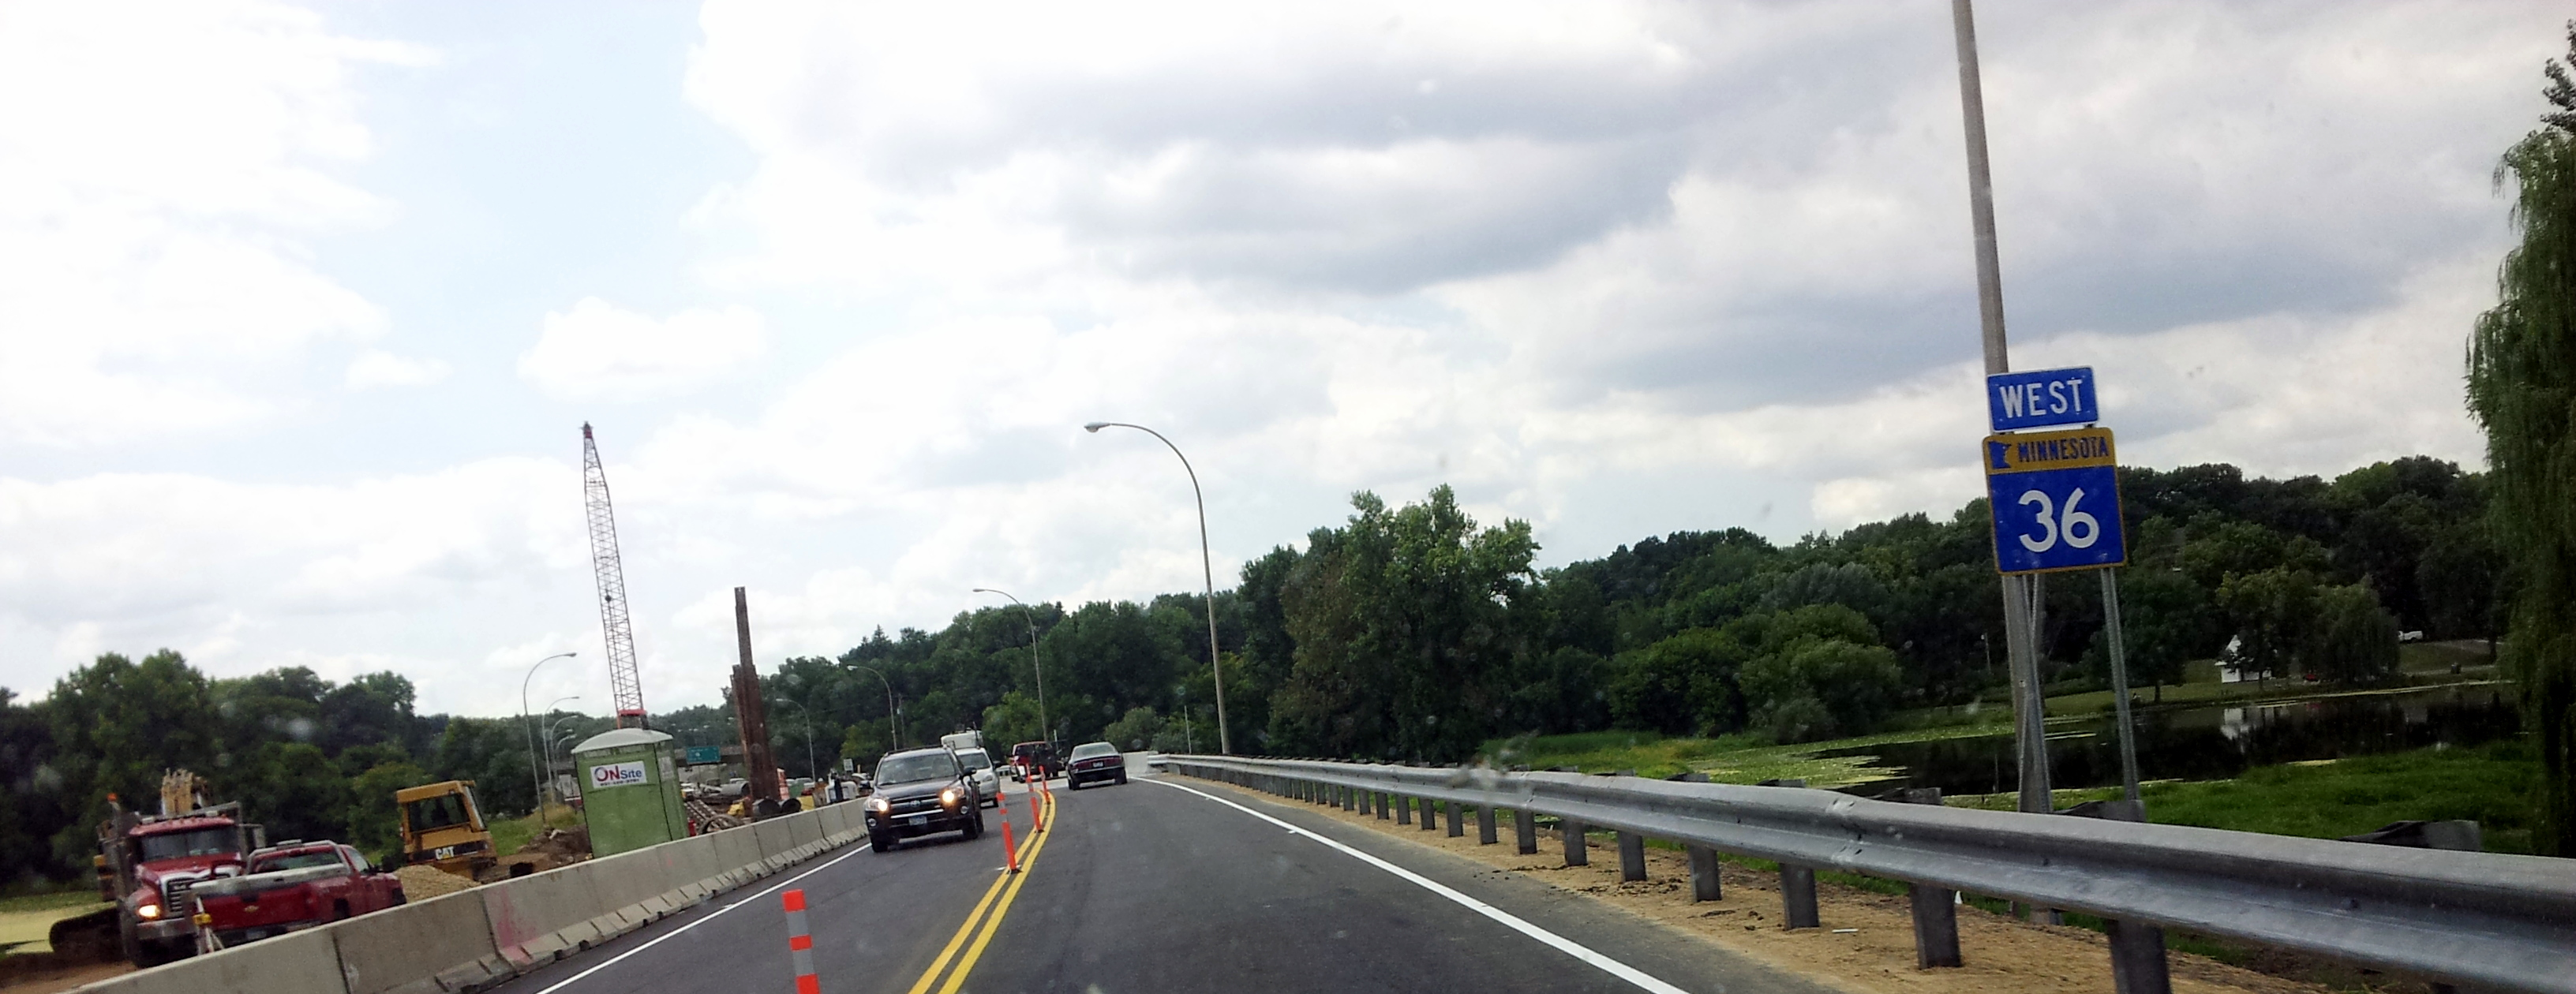 File:Hwy 36 Construction - Maplewood, MN - panoramio jpg